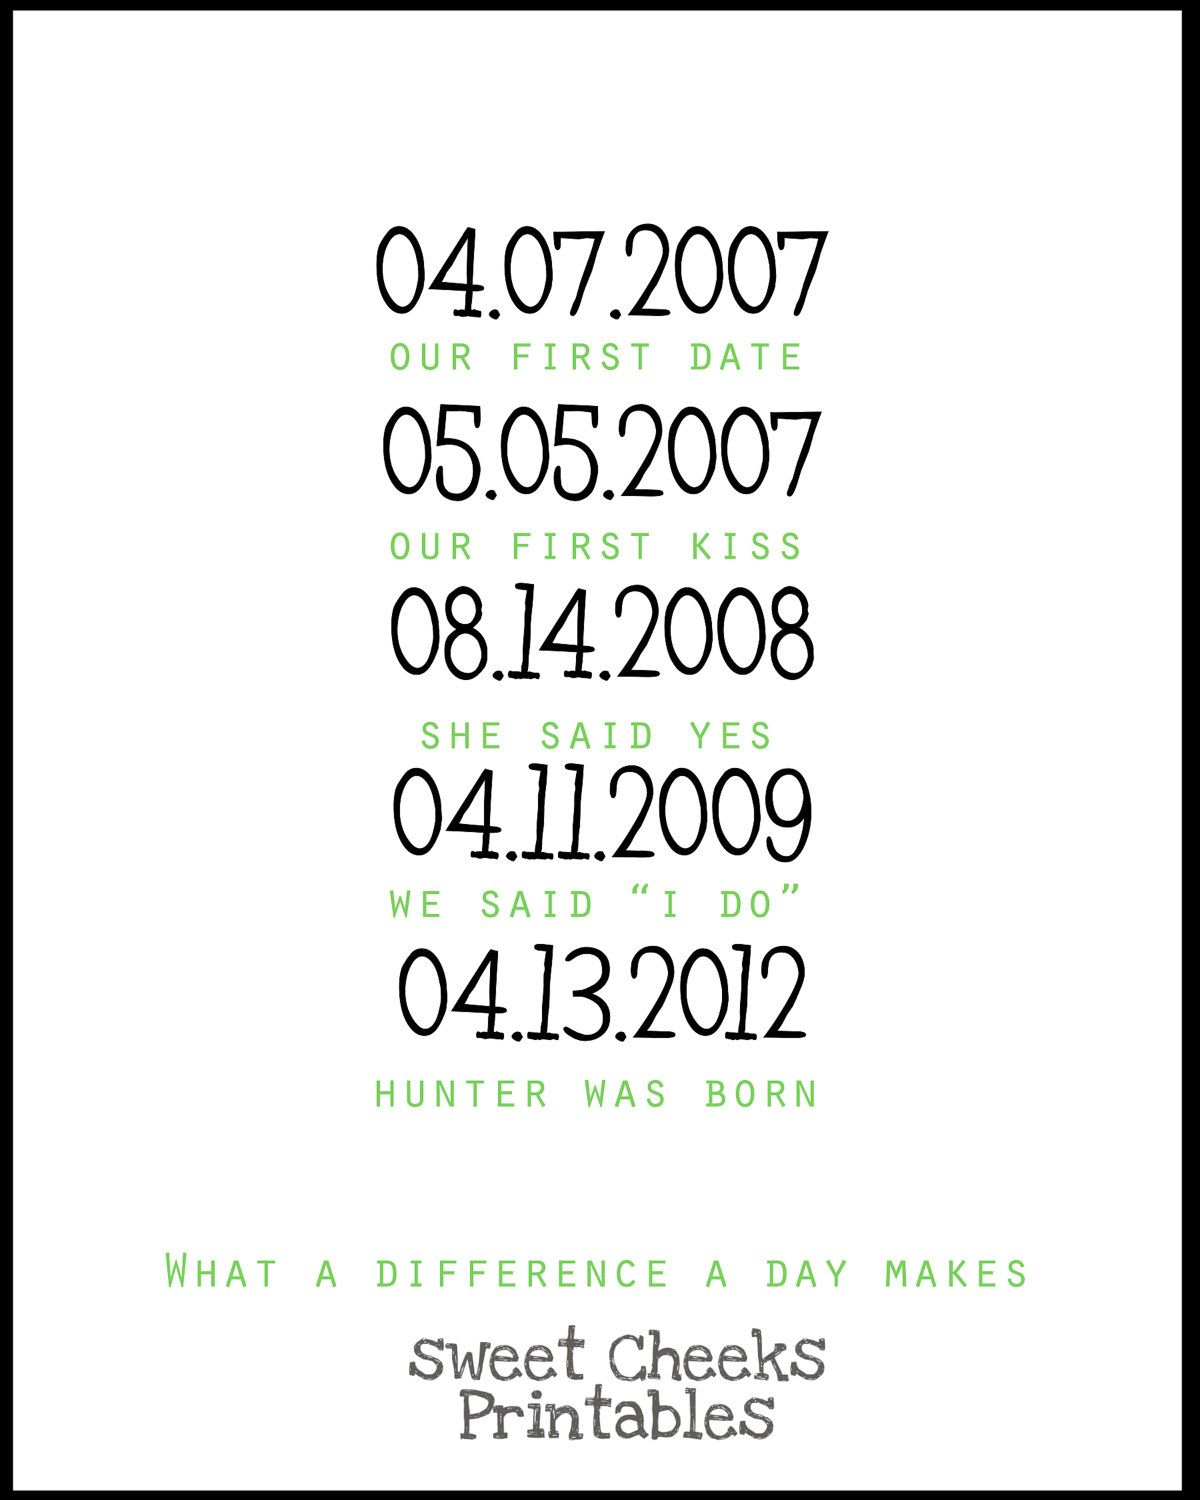 Printable Home Decor Part - 34: What A Difference A Day Makes Important Dates DIY Printable Home Decor.  $3.25